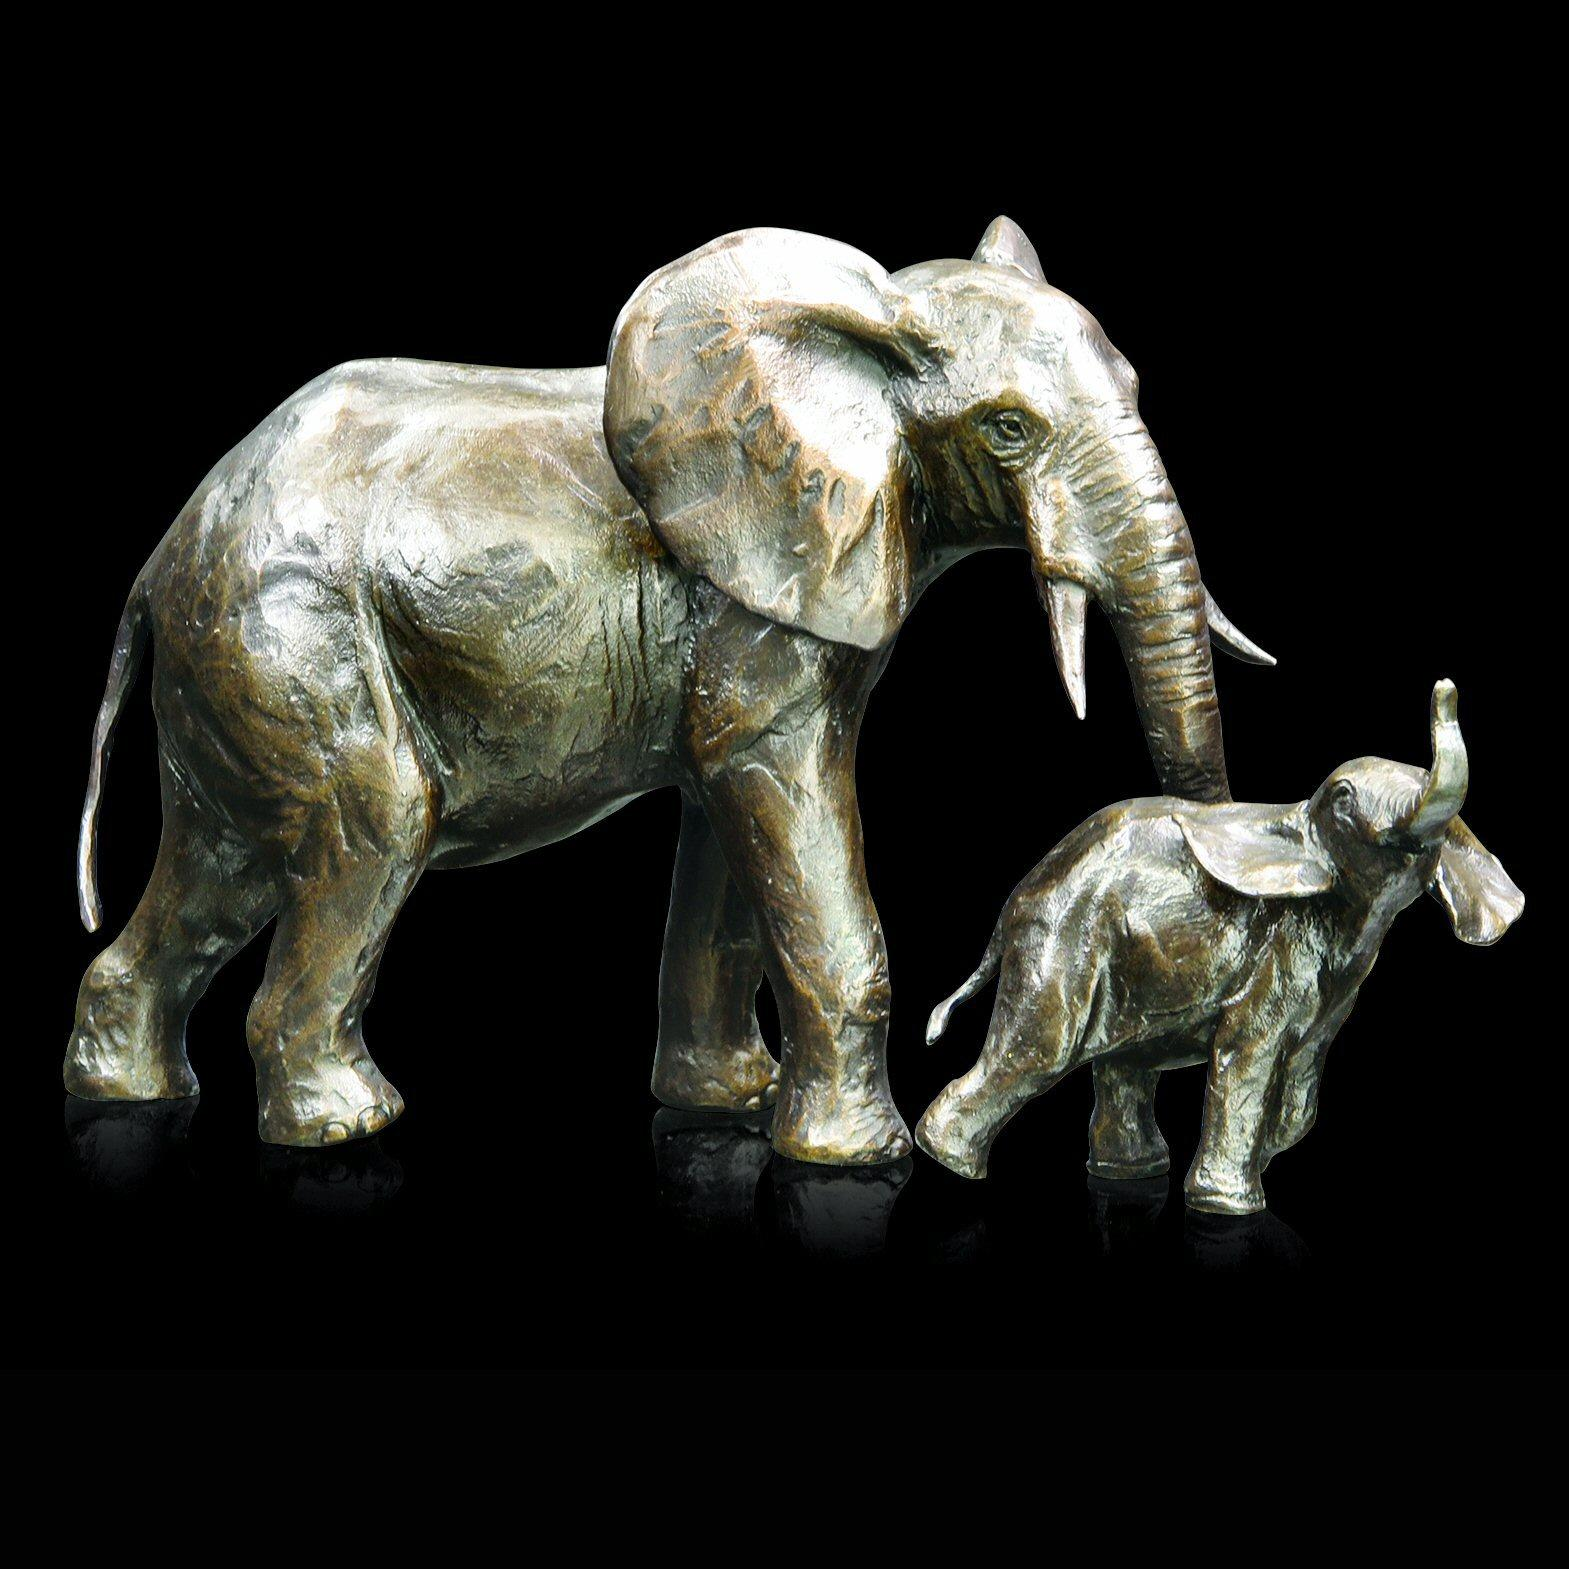 Medium Elephant Cow and Calf (938) in bronze by Michael Simpson